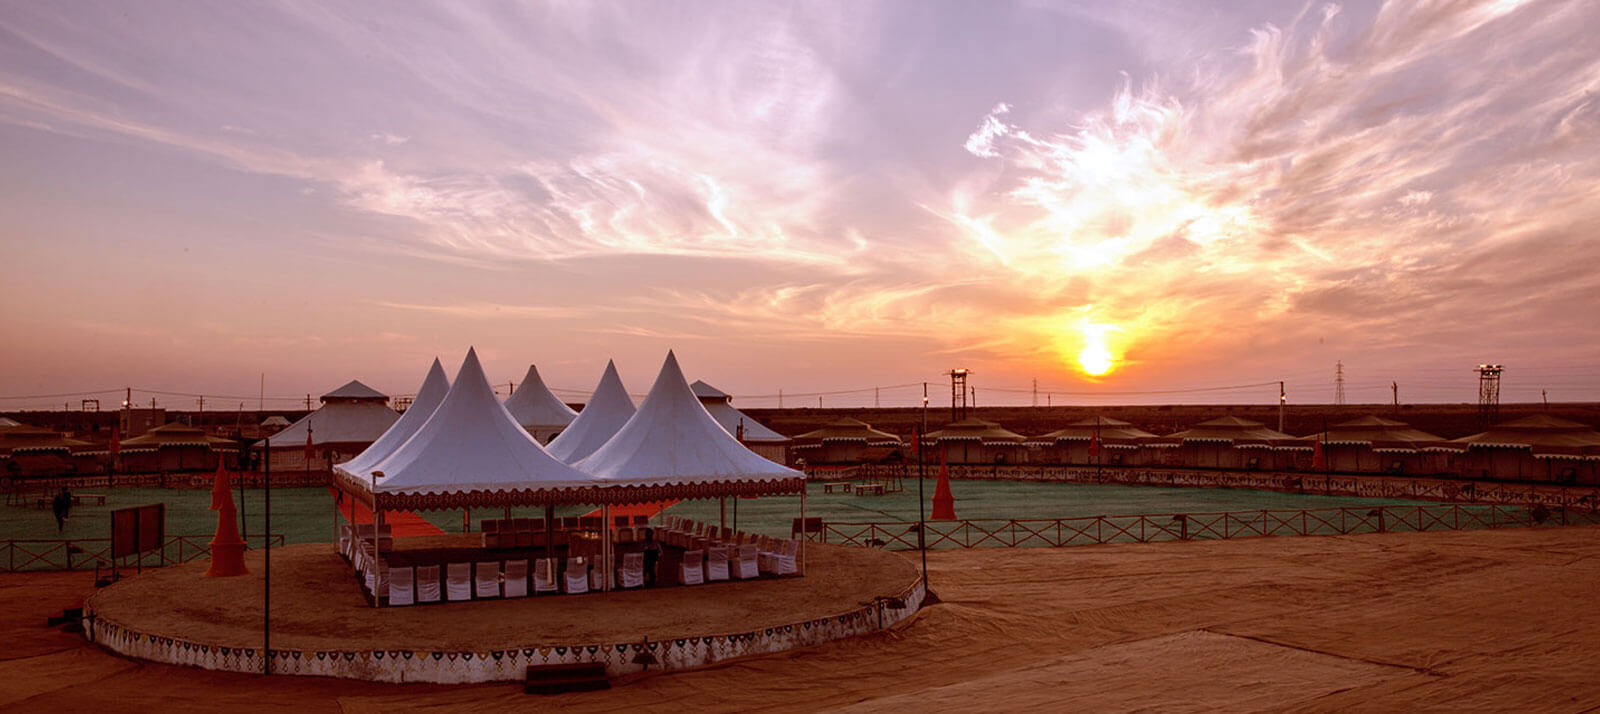 Rann utsav Tour package